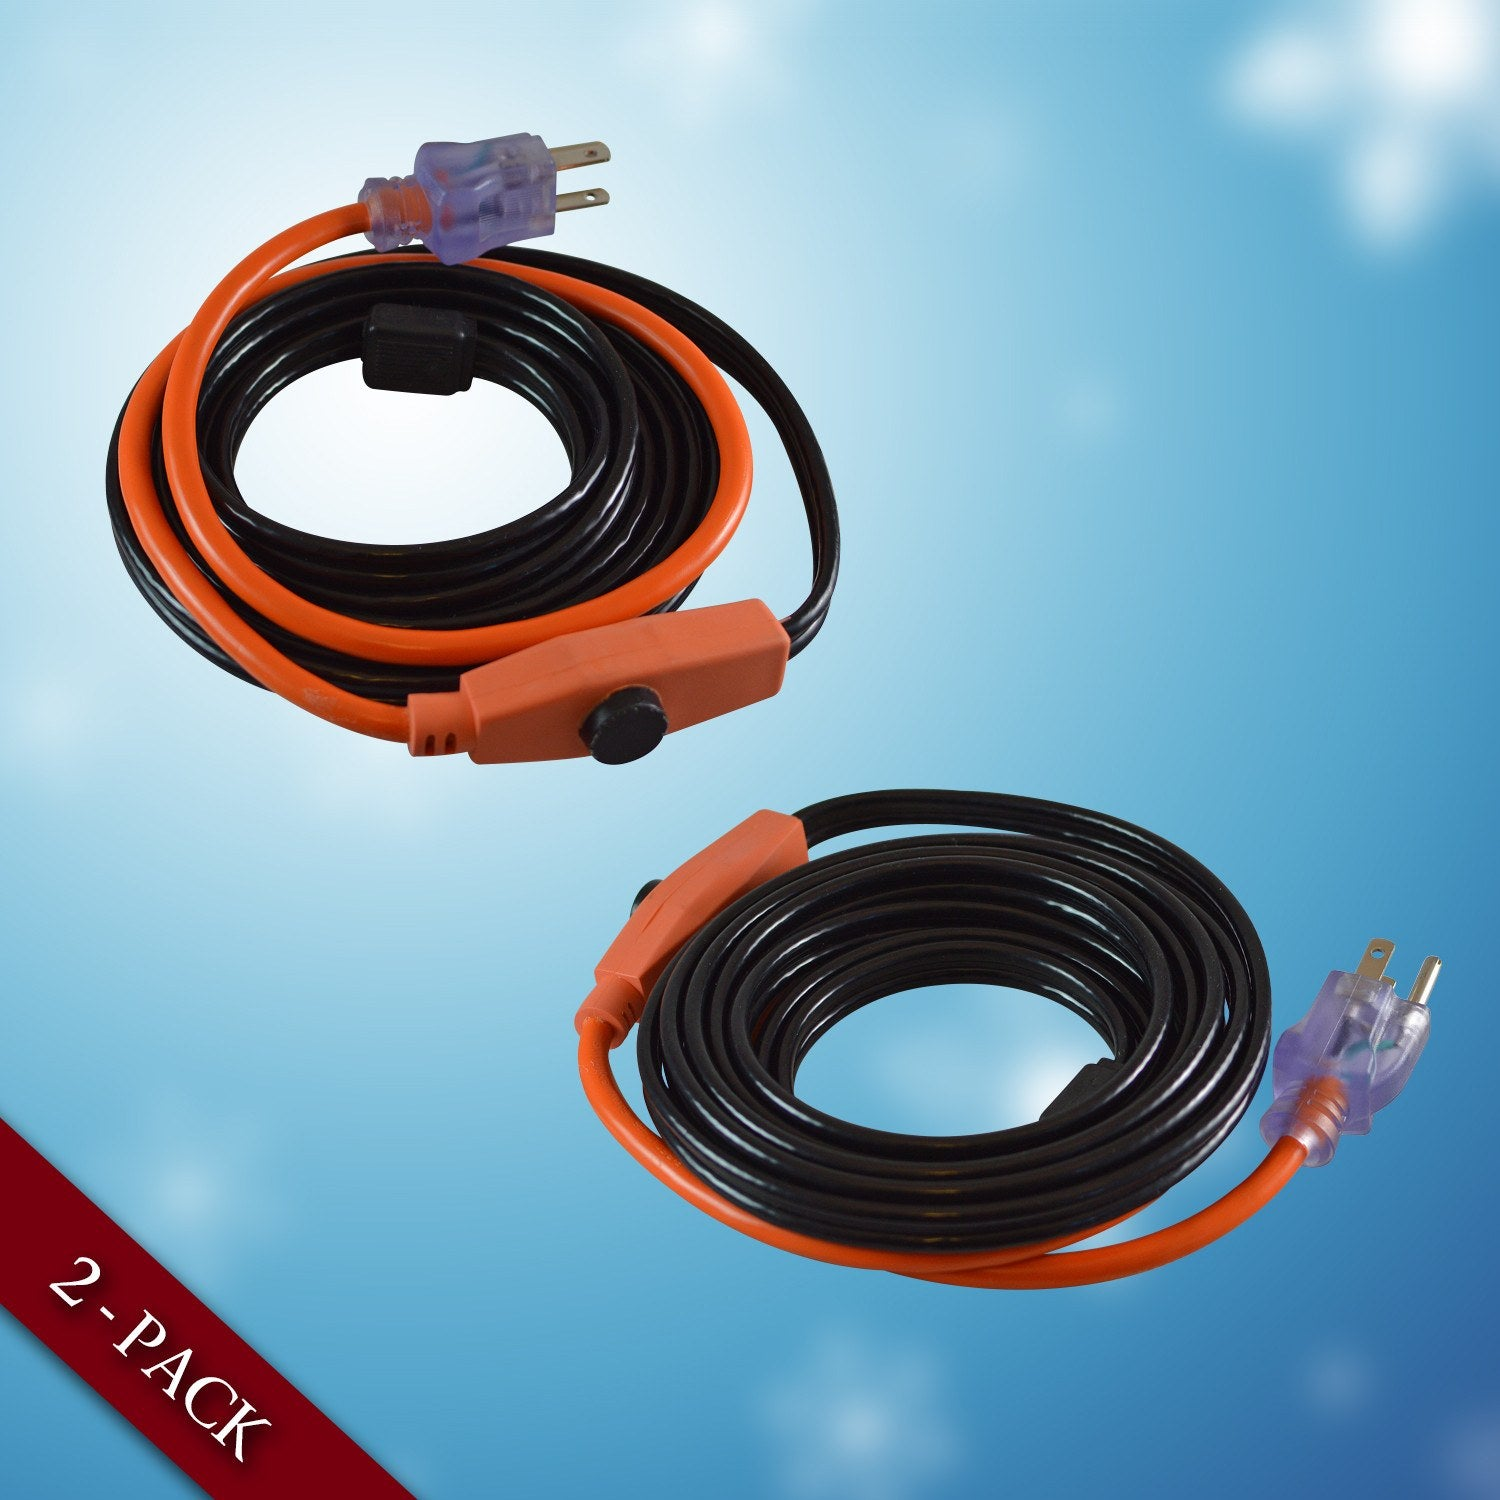 Heating Cable for Pipe and Valve, 2 Packs – Aspectek